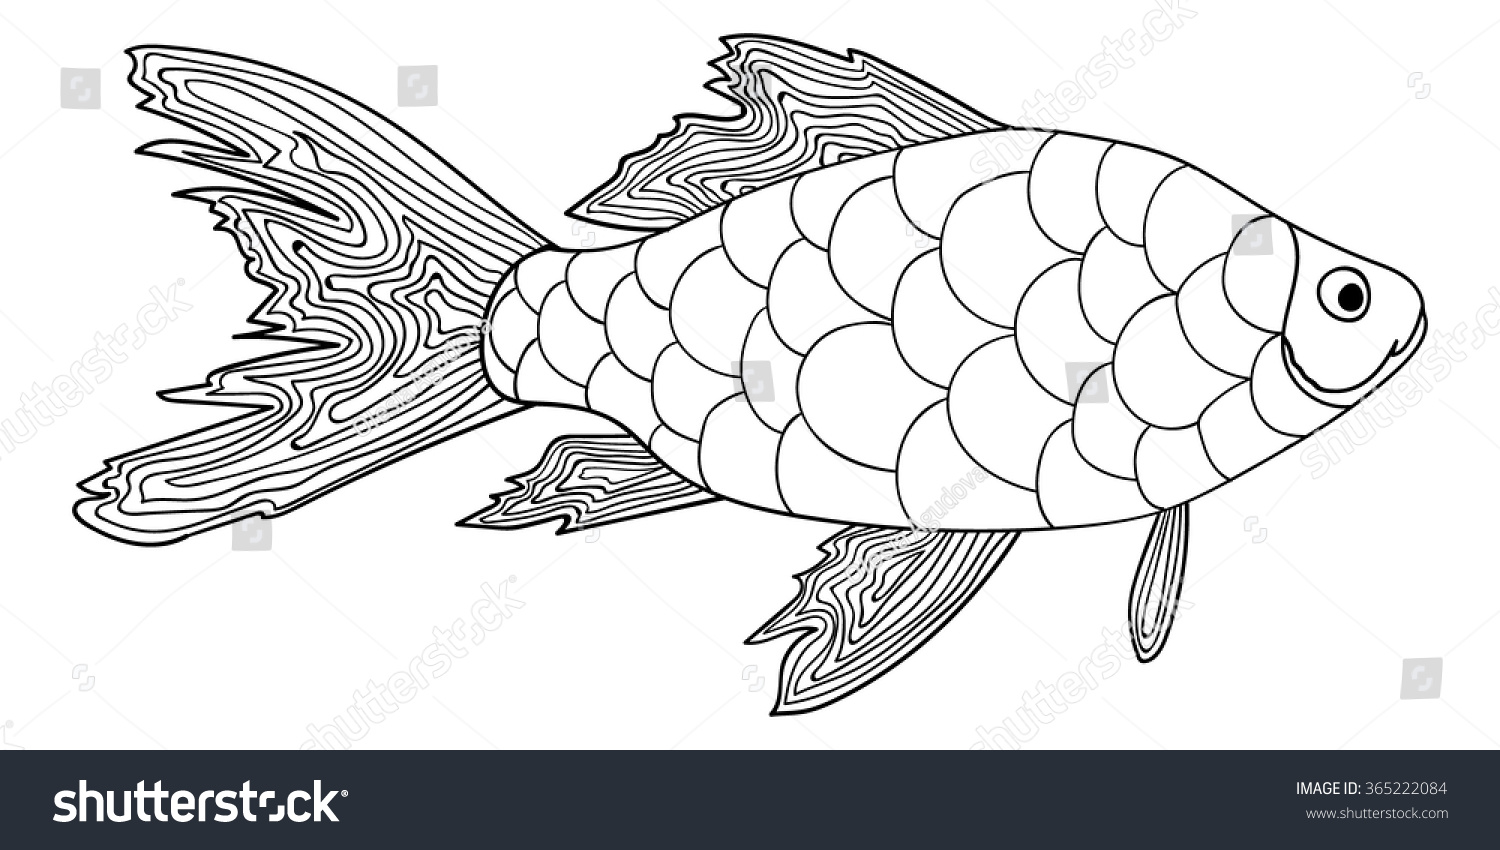 detailed ornamental sketch fish hand drawn stock vector 365222084